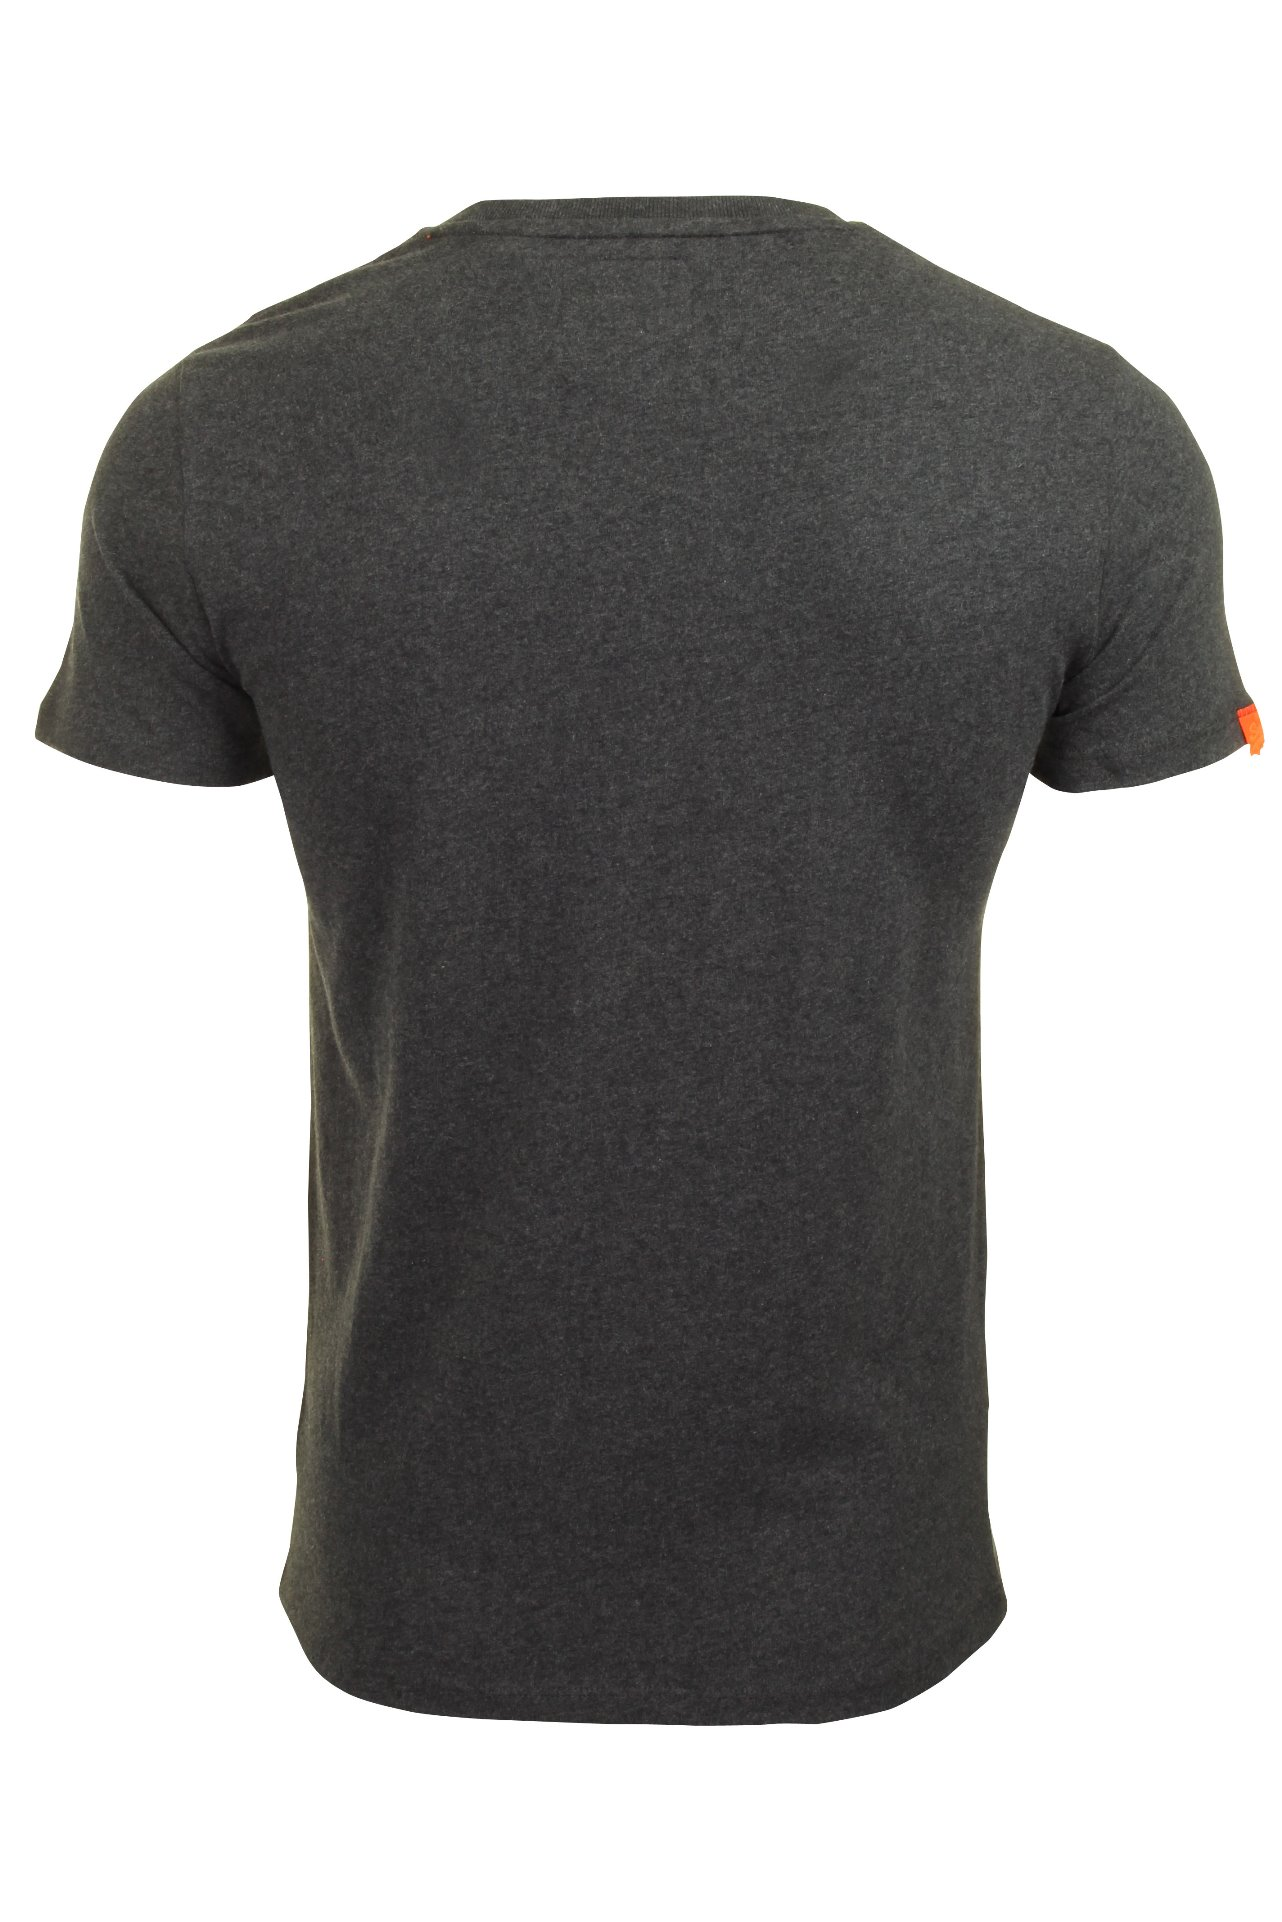 Superdry-Mens-T-Shirt-039-OL-Vintage-Embroidery-Tee-039-Short-Sleeved thumbnail 14